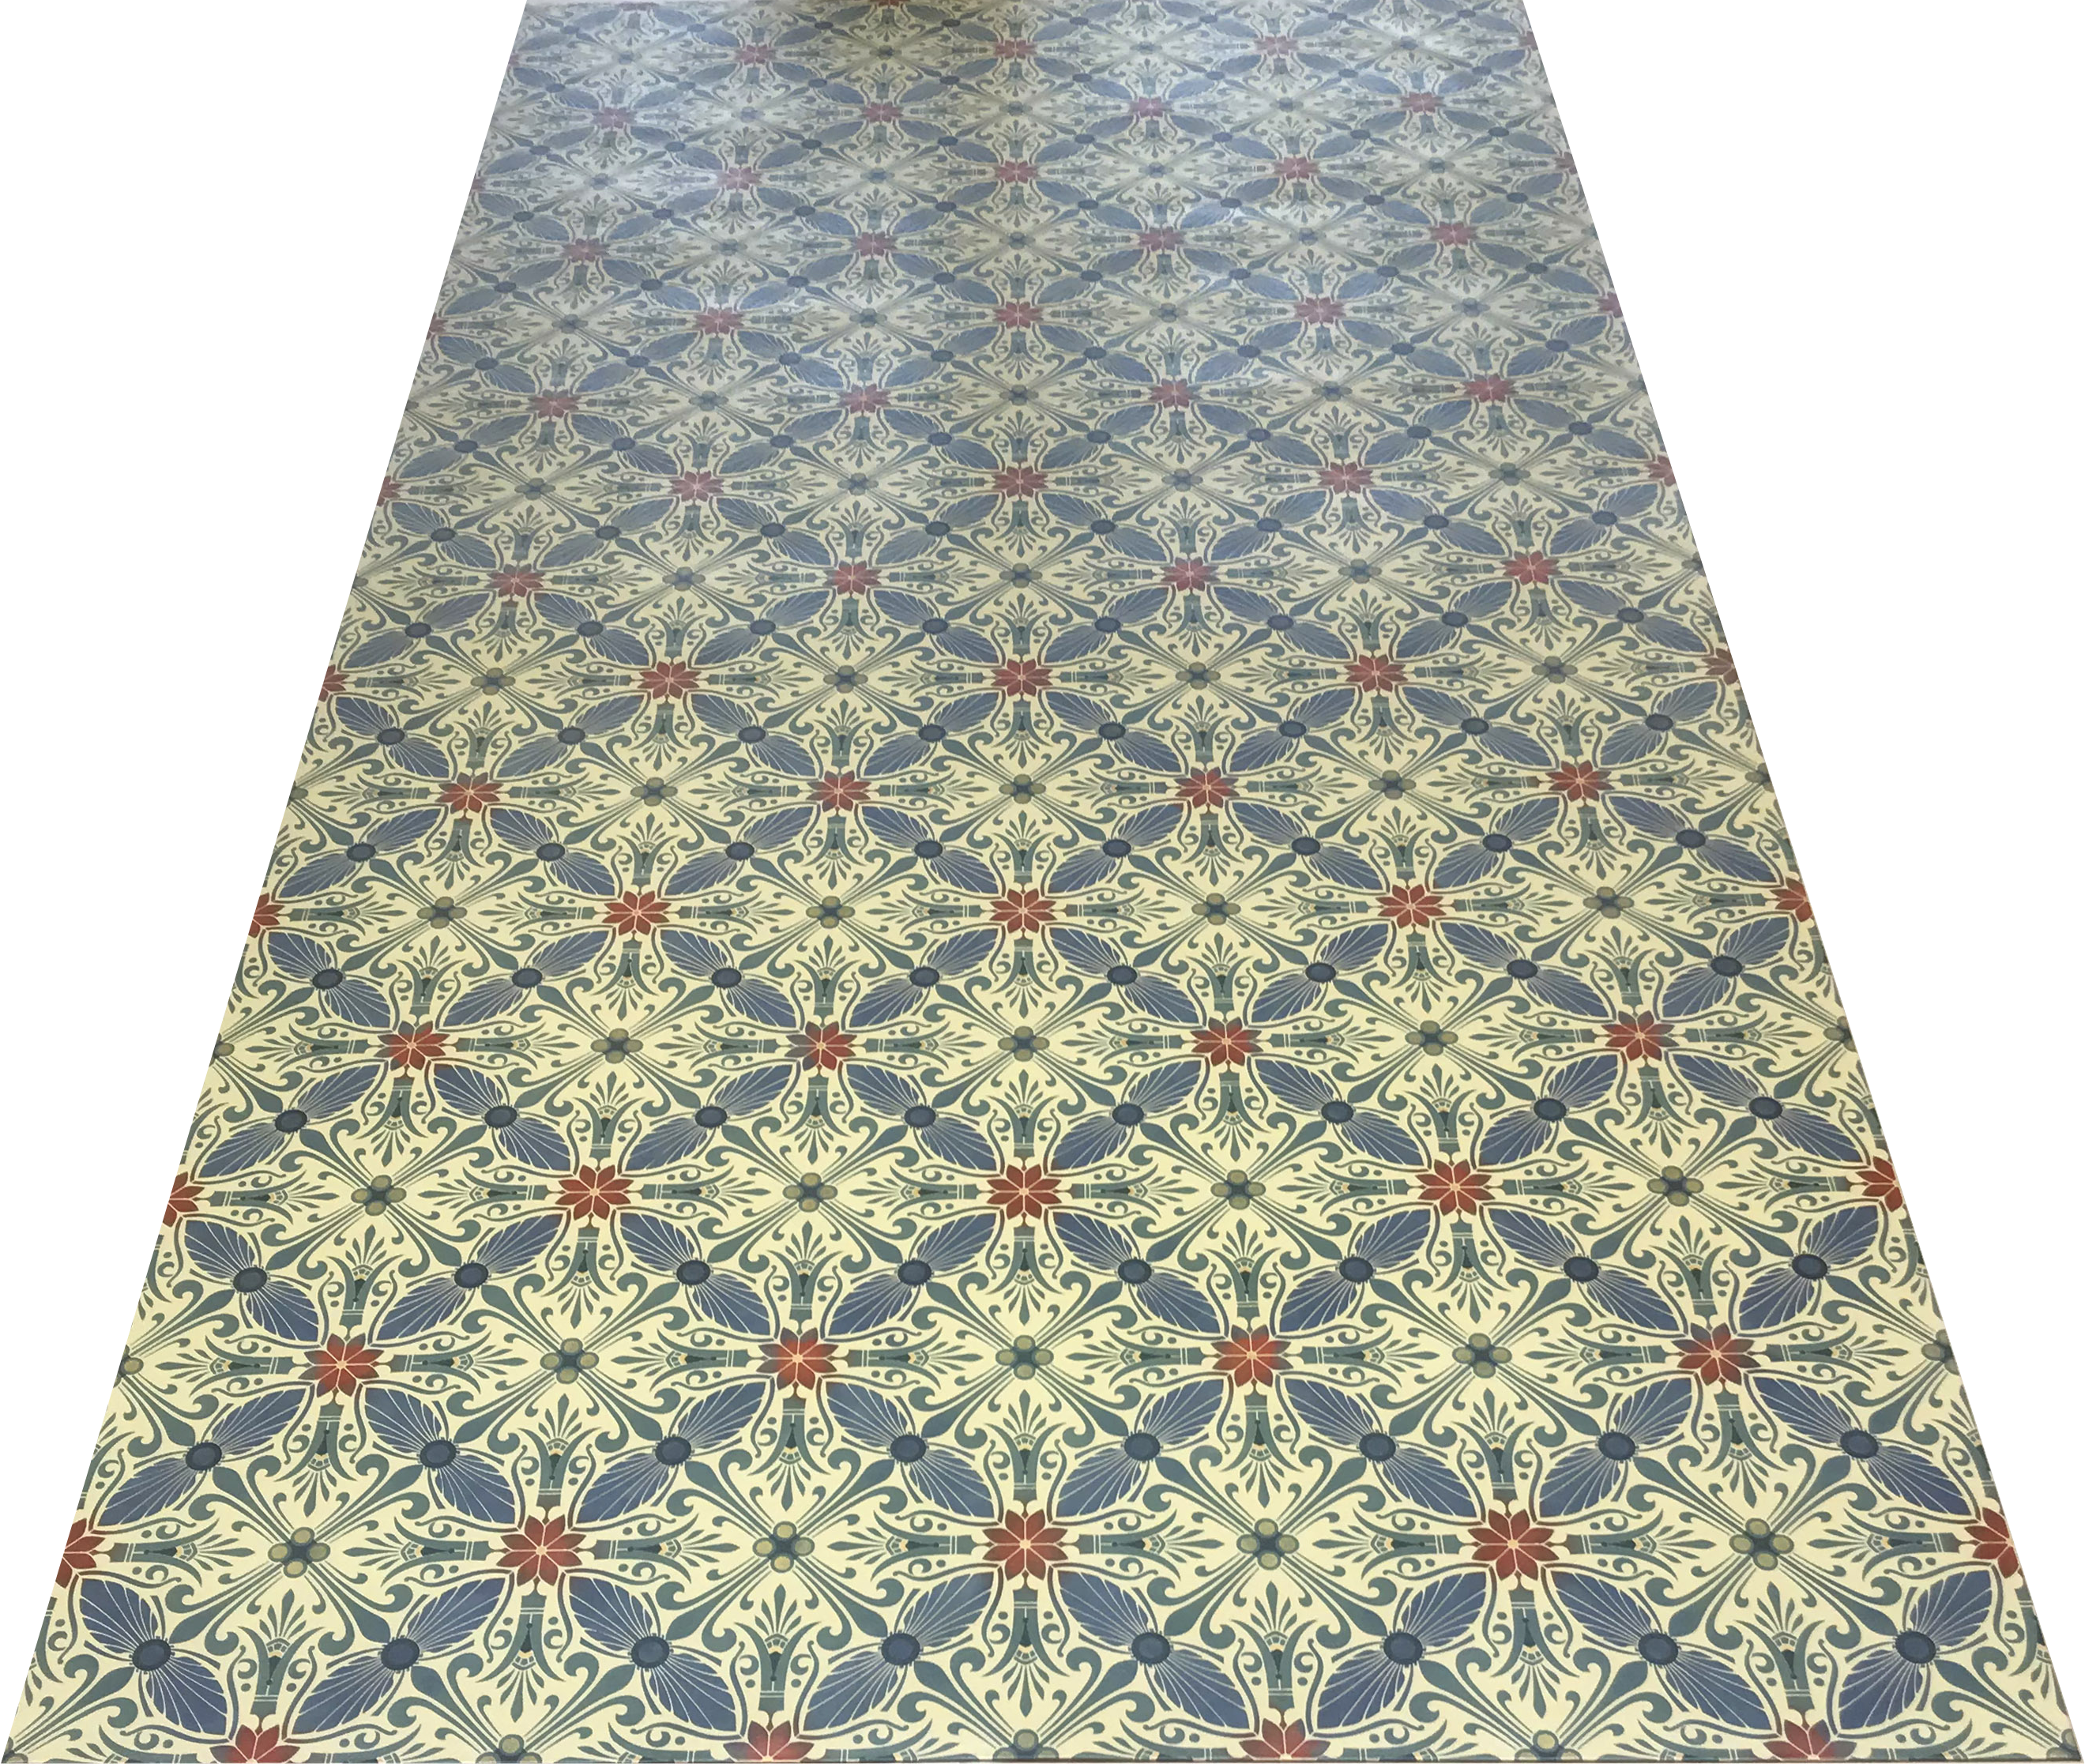 Full image of this floorcloth based on a Christopher Dresser design with an overall diamond pattern and slightly deco elements.